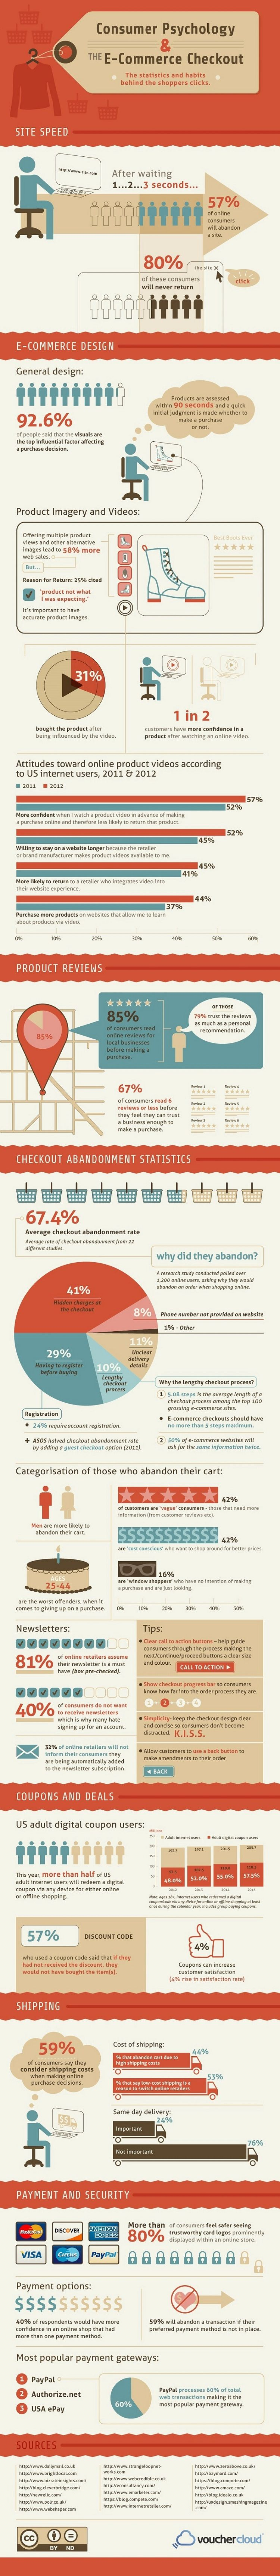 consumer-psychology-and-ecommerce-checkouts-infographic